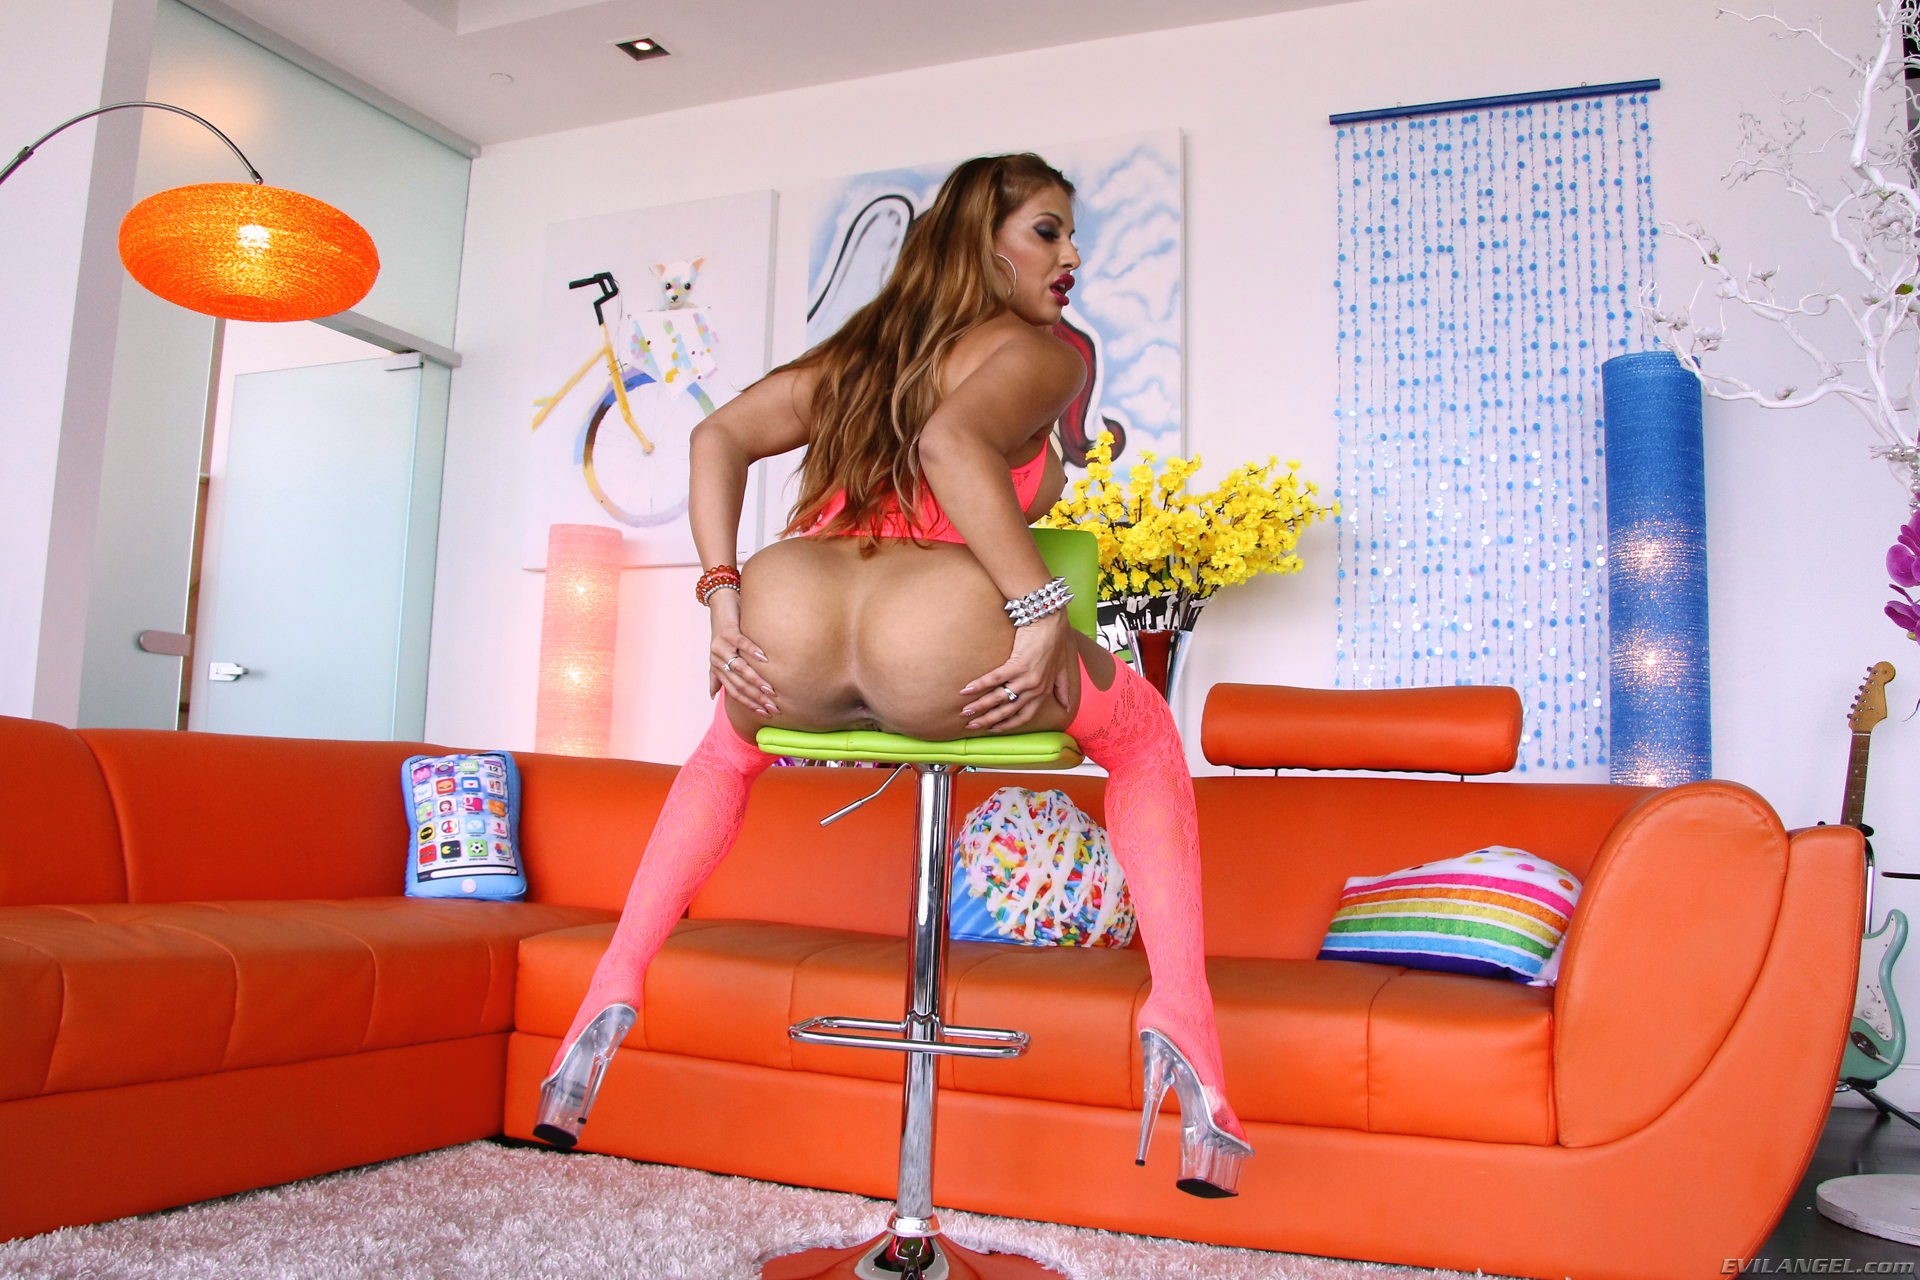 mercedes carrera in evilangel phat-ass milf mercedes' anal stuffing